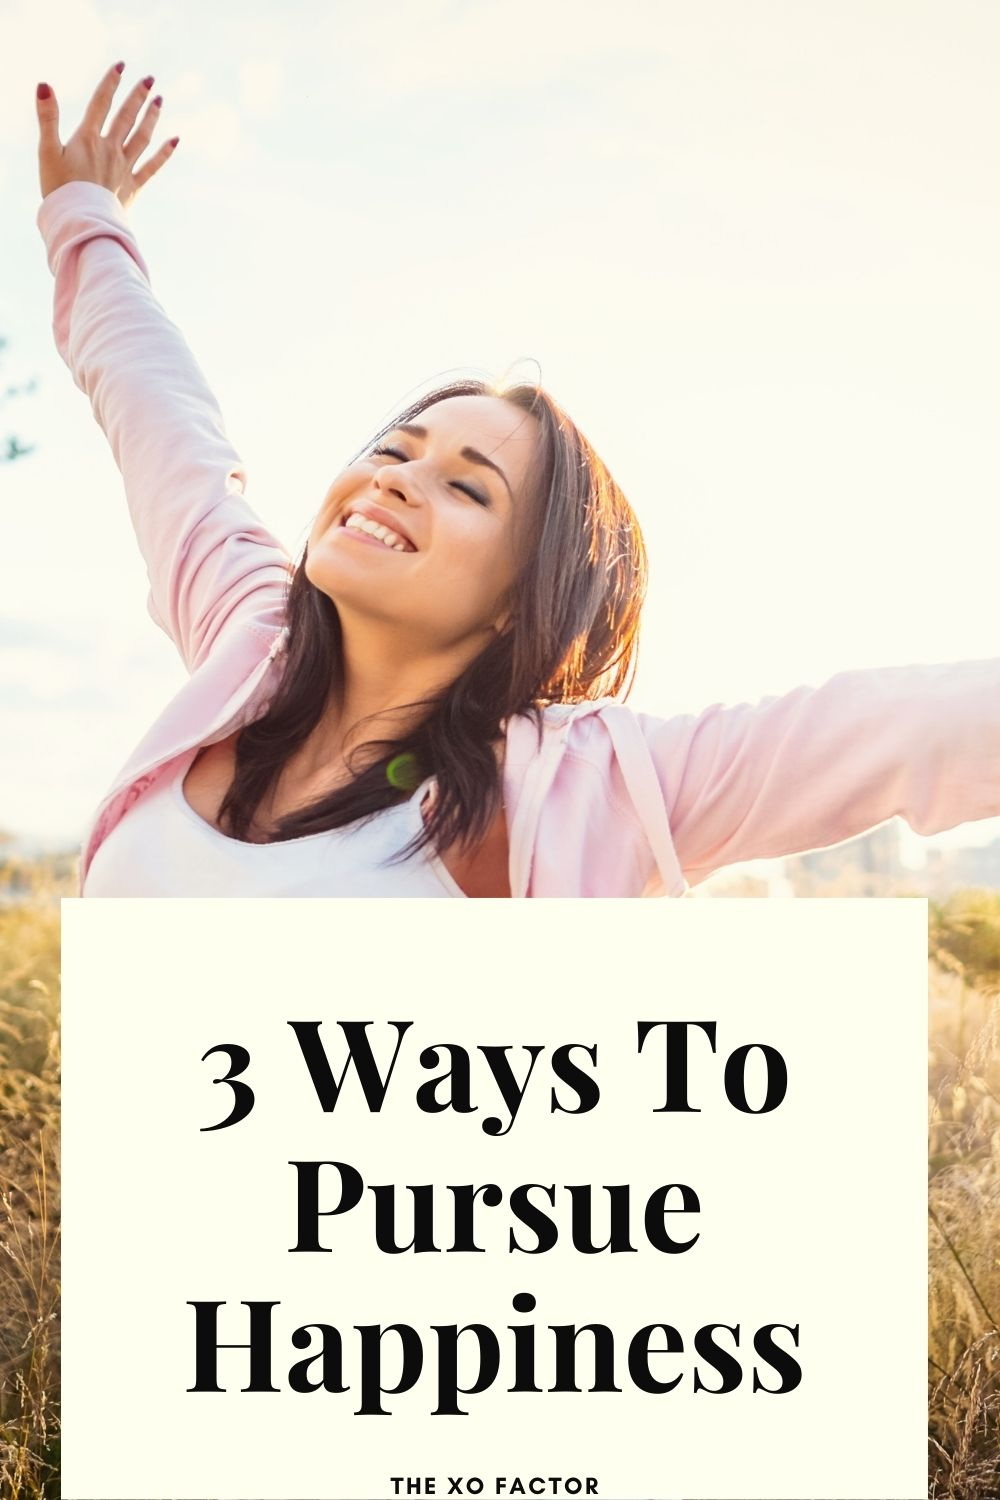 3 ways to pursue happiness